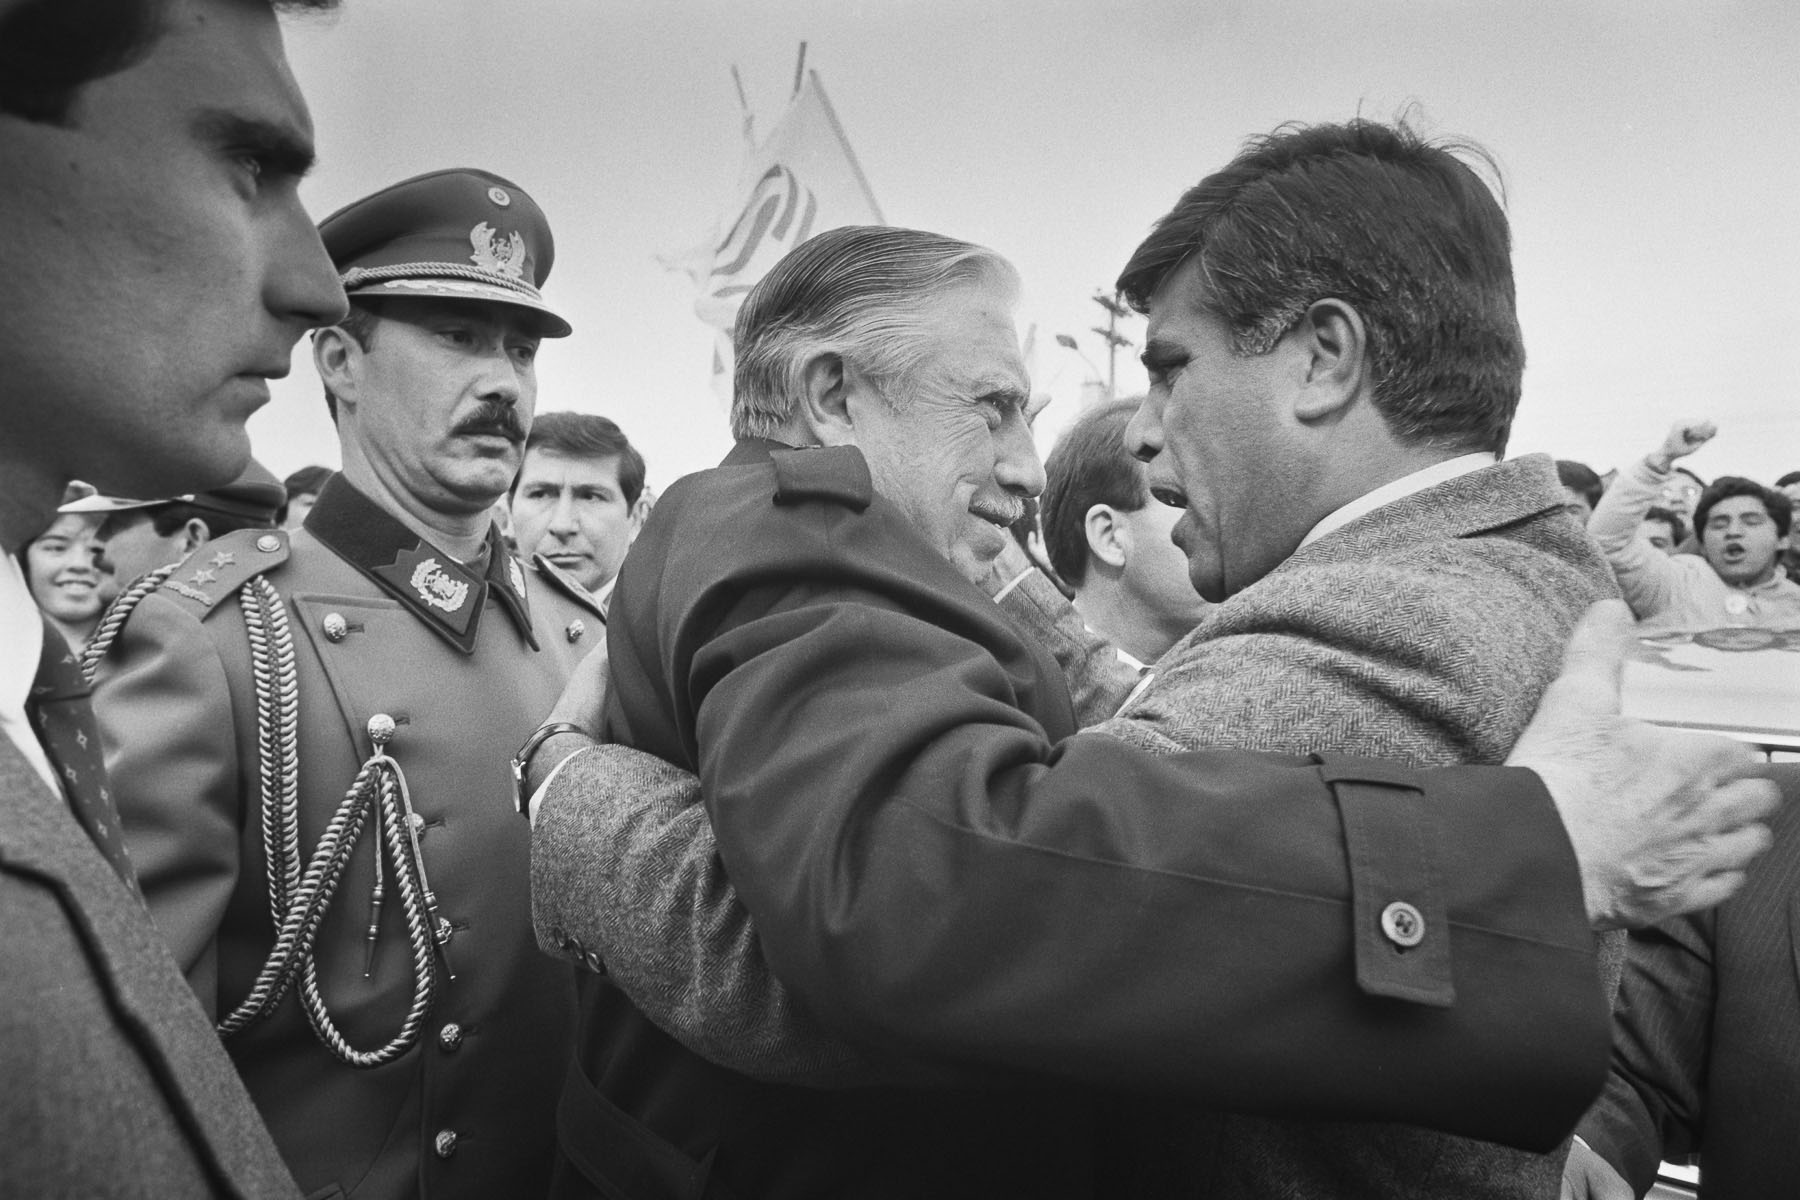 Augusto Pinochet at SI rally during plebiscite Yes/No vote campaign in September 1988